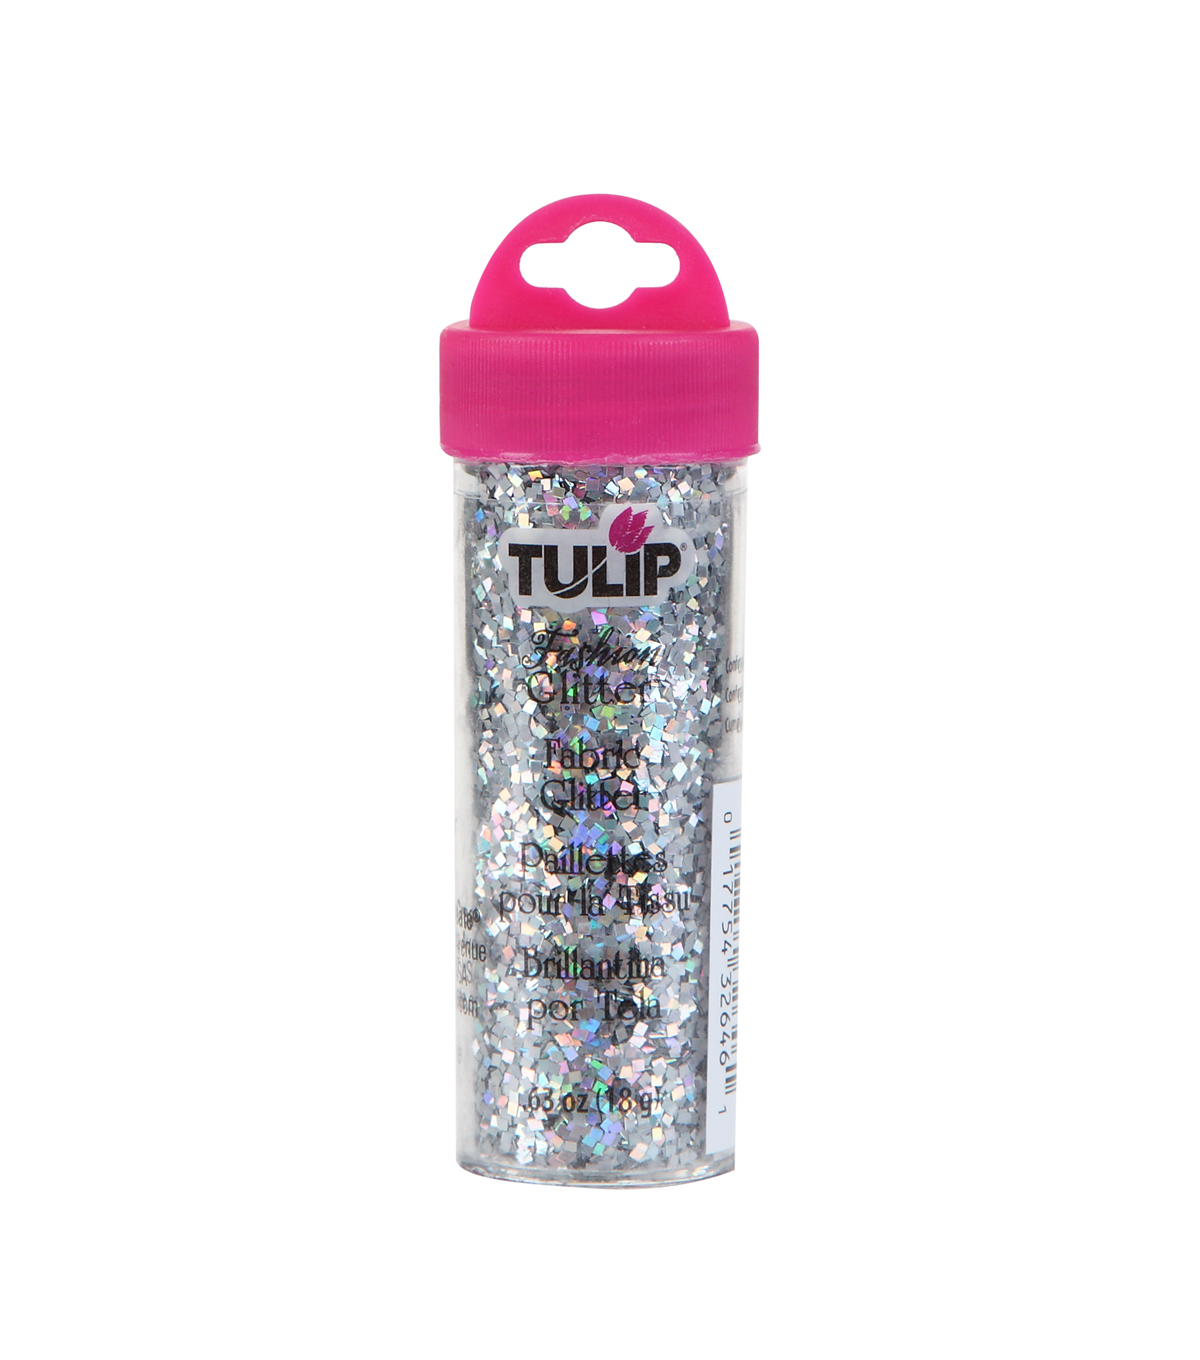 Tulip® Fashion Glitter Silver Medium Hologram